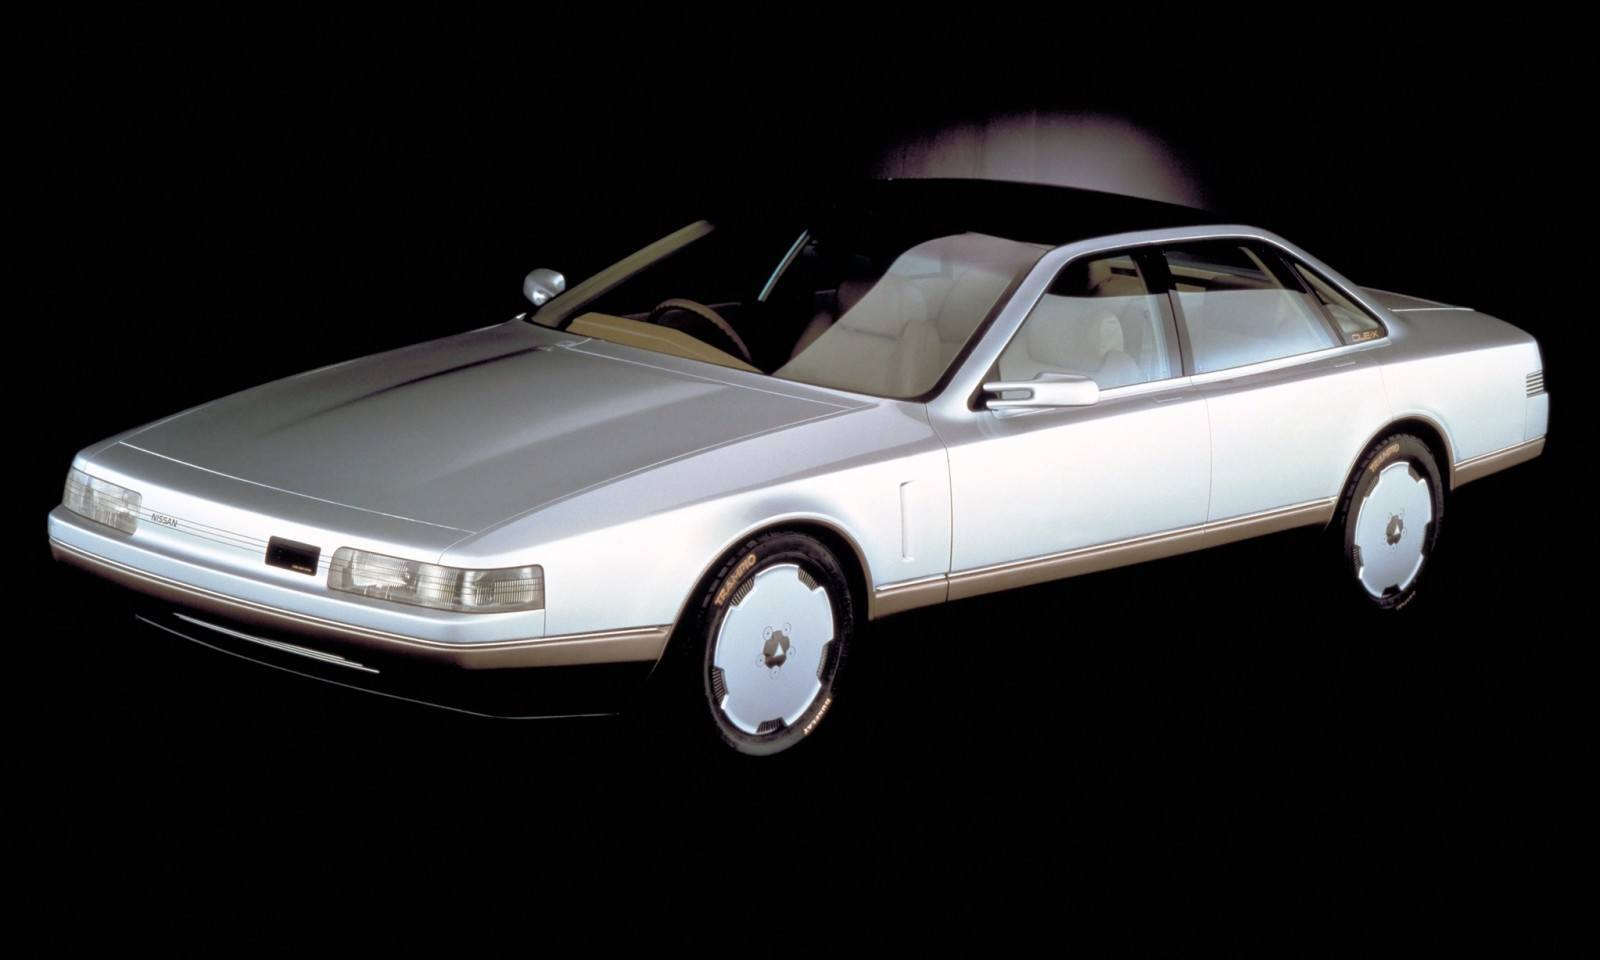 Concept Flashback - 1985 Nissan Cue-X Inspired Original Infiniti Q45 Flagship and Future Q80 14